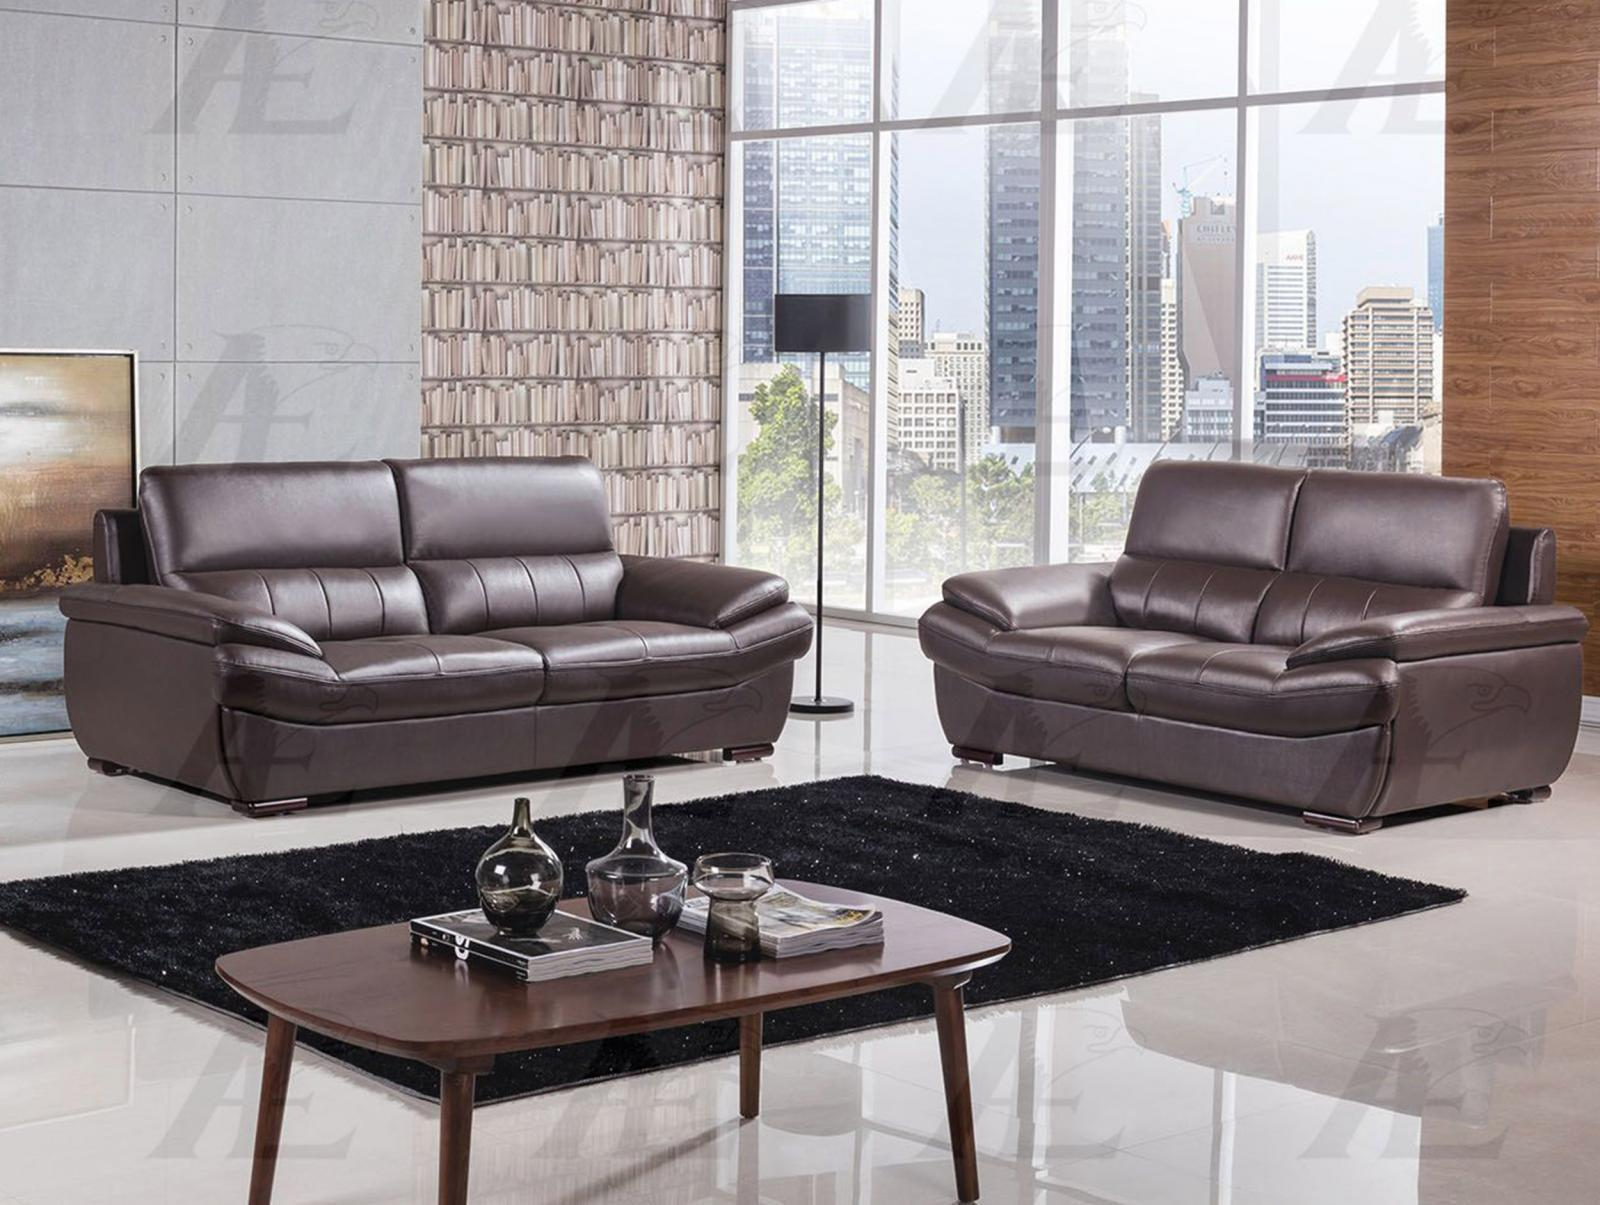 American Eagle EK-B305-DC Dark Chocolate Sofa Loveseat Genuine Leather 2Pcs Set